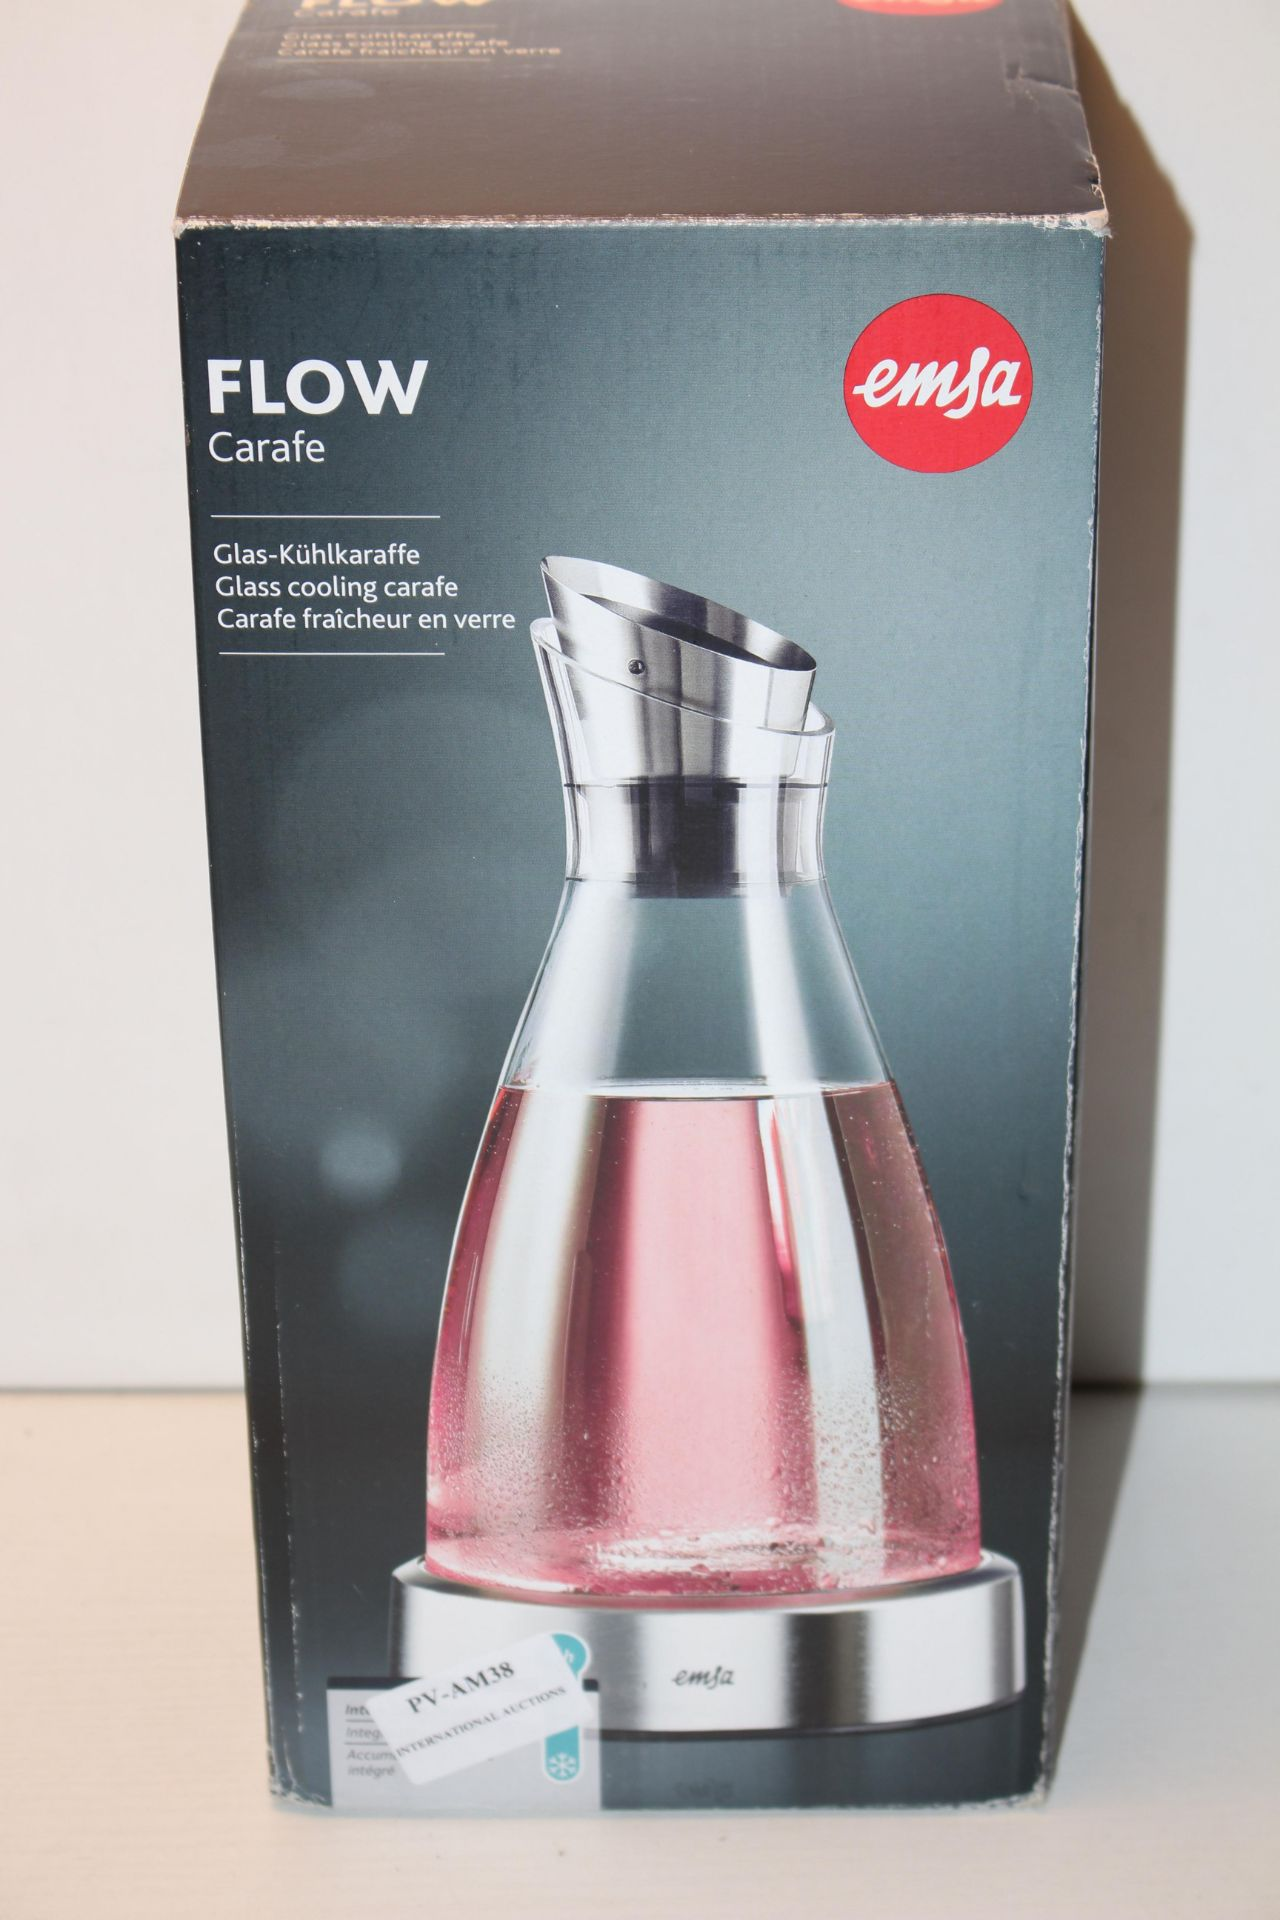 BOXED EMSA FLOW CARAFE - WITH COOLING ELEMENT RRP £30.42Condition ReportAppraisal Available on